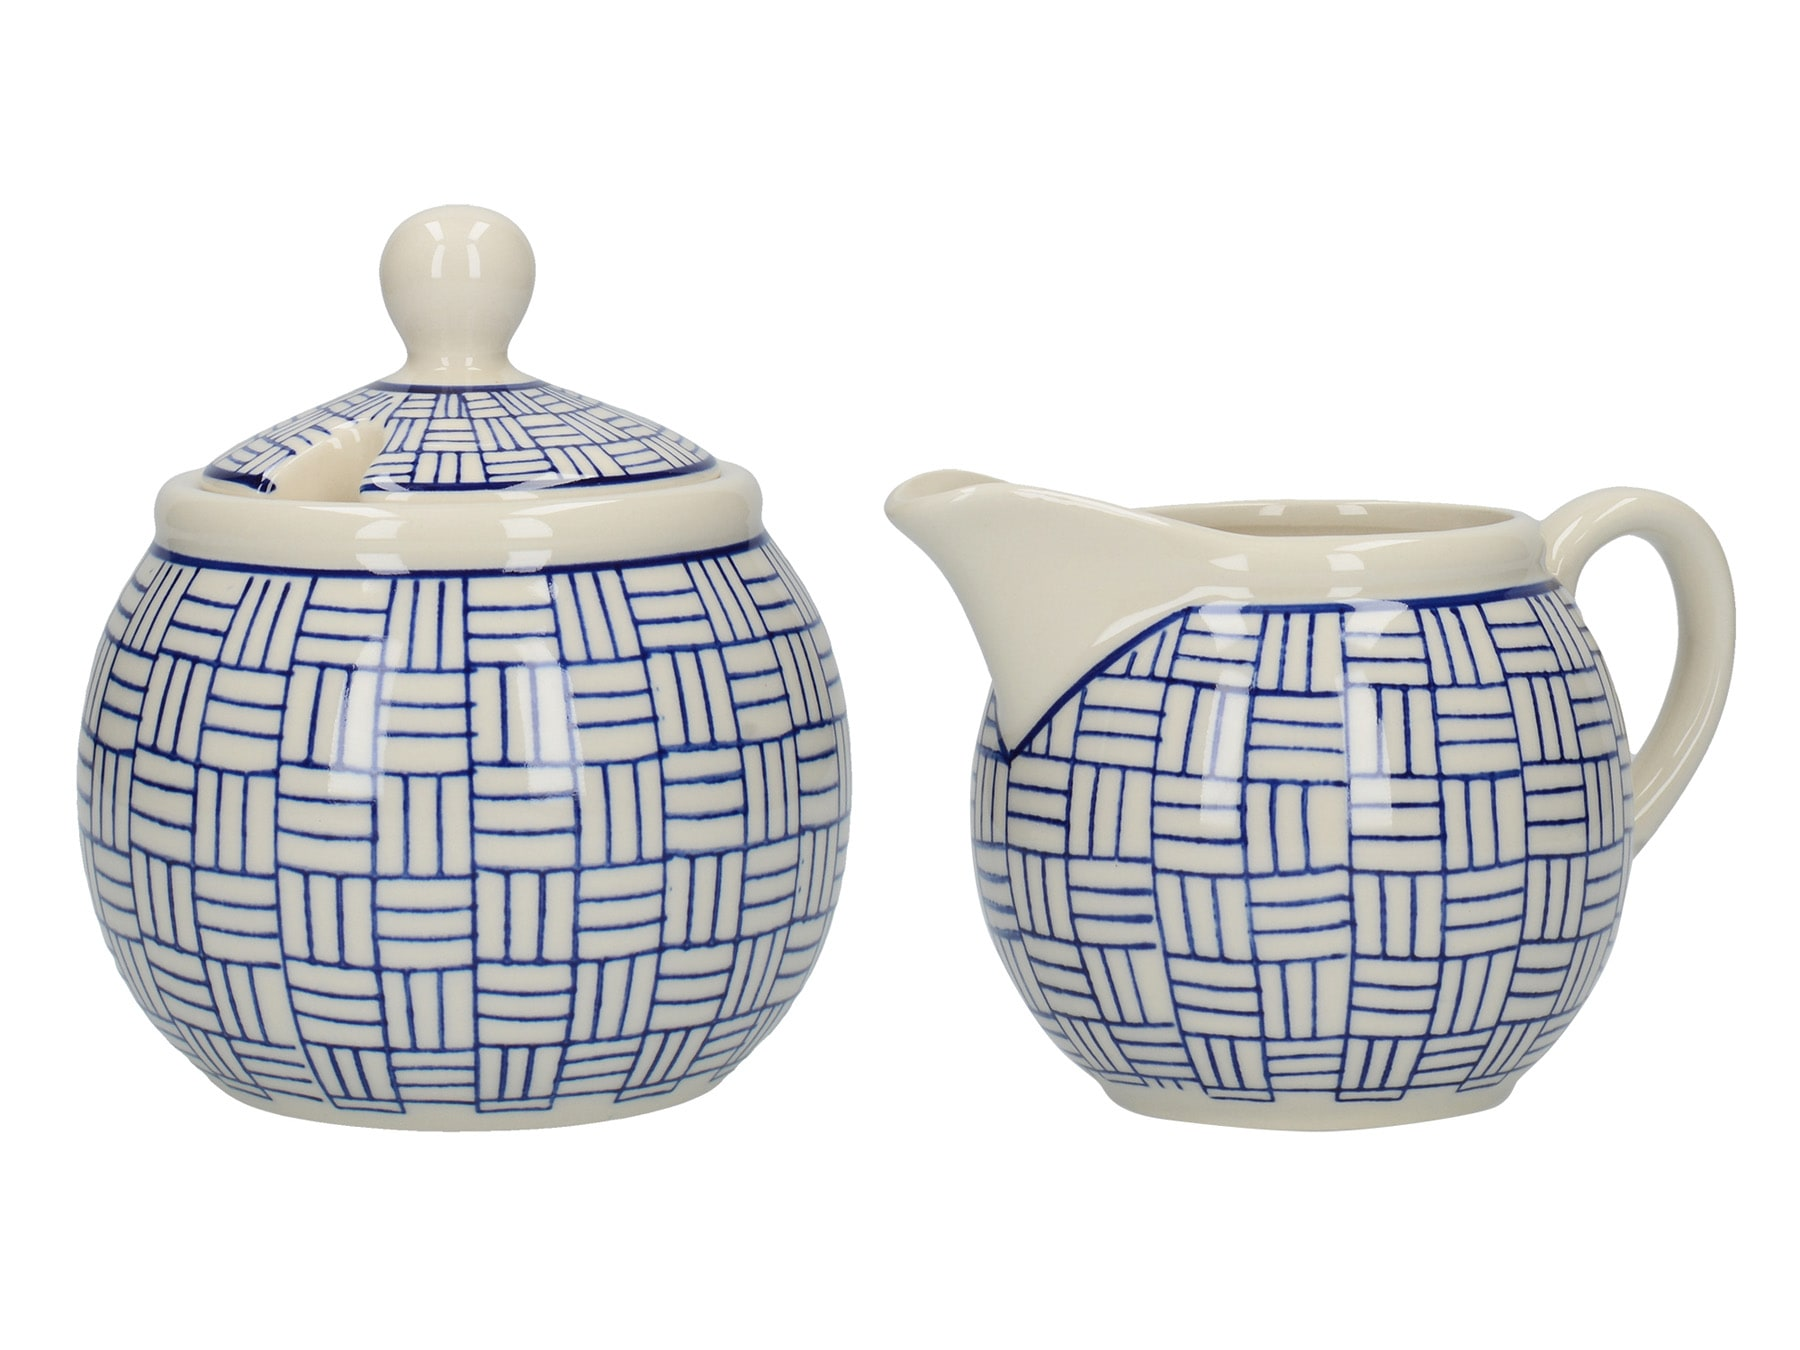 London Pottery Sugar and Creamer Set Lattice